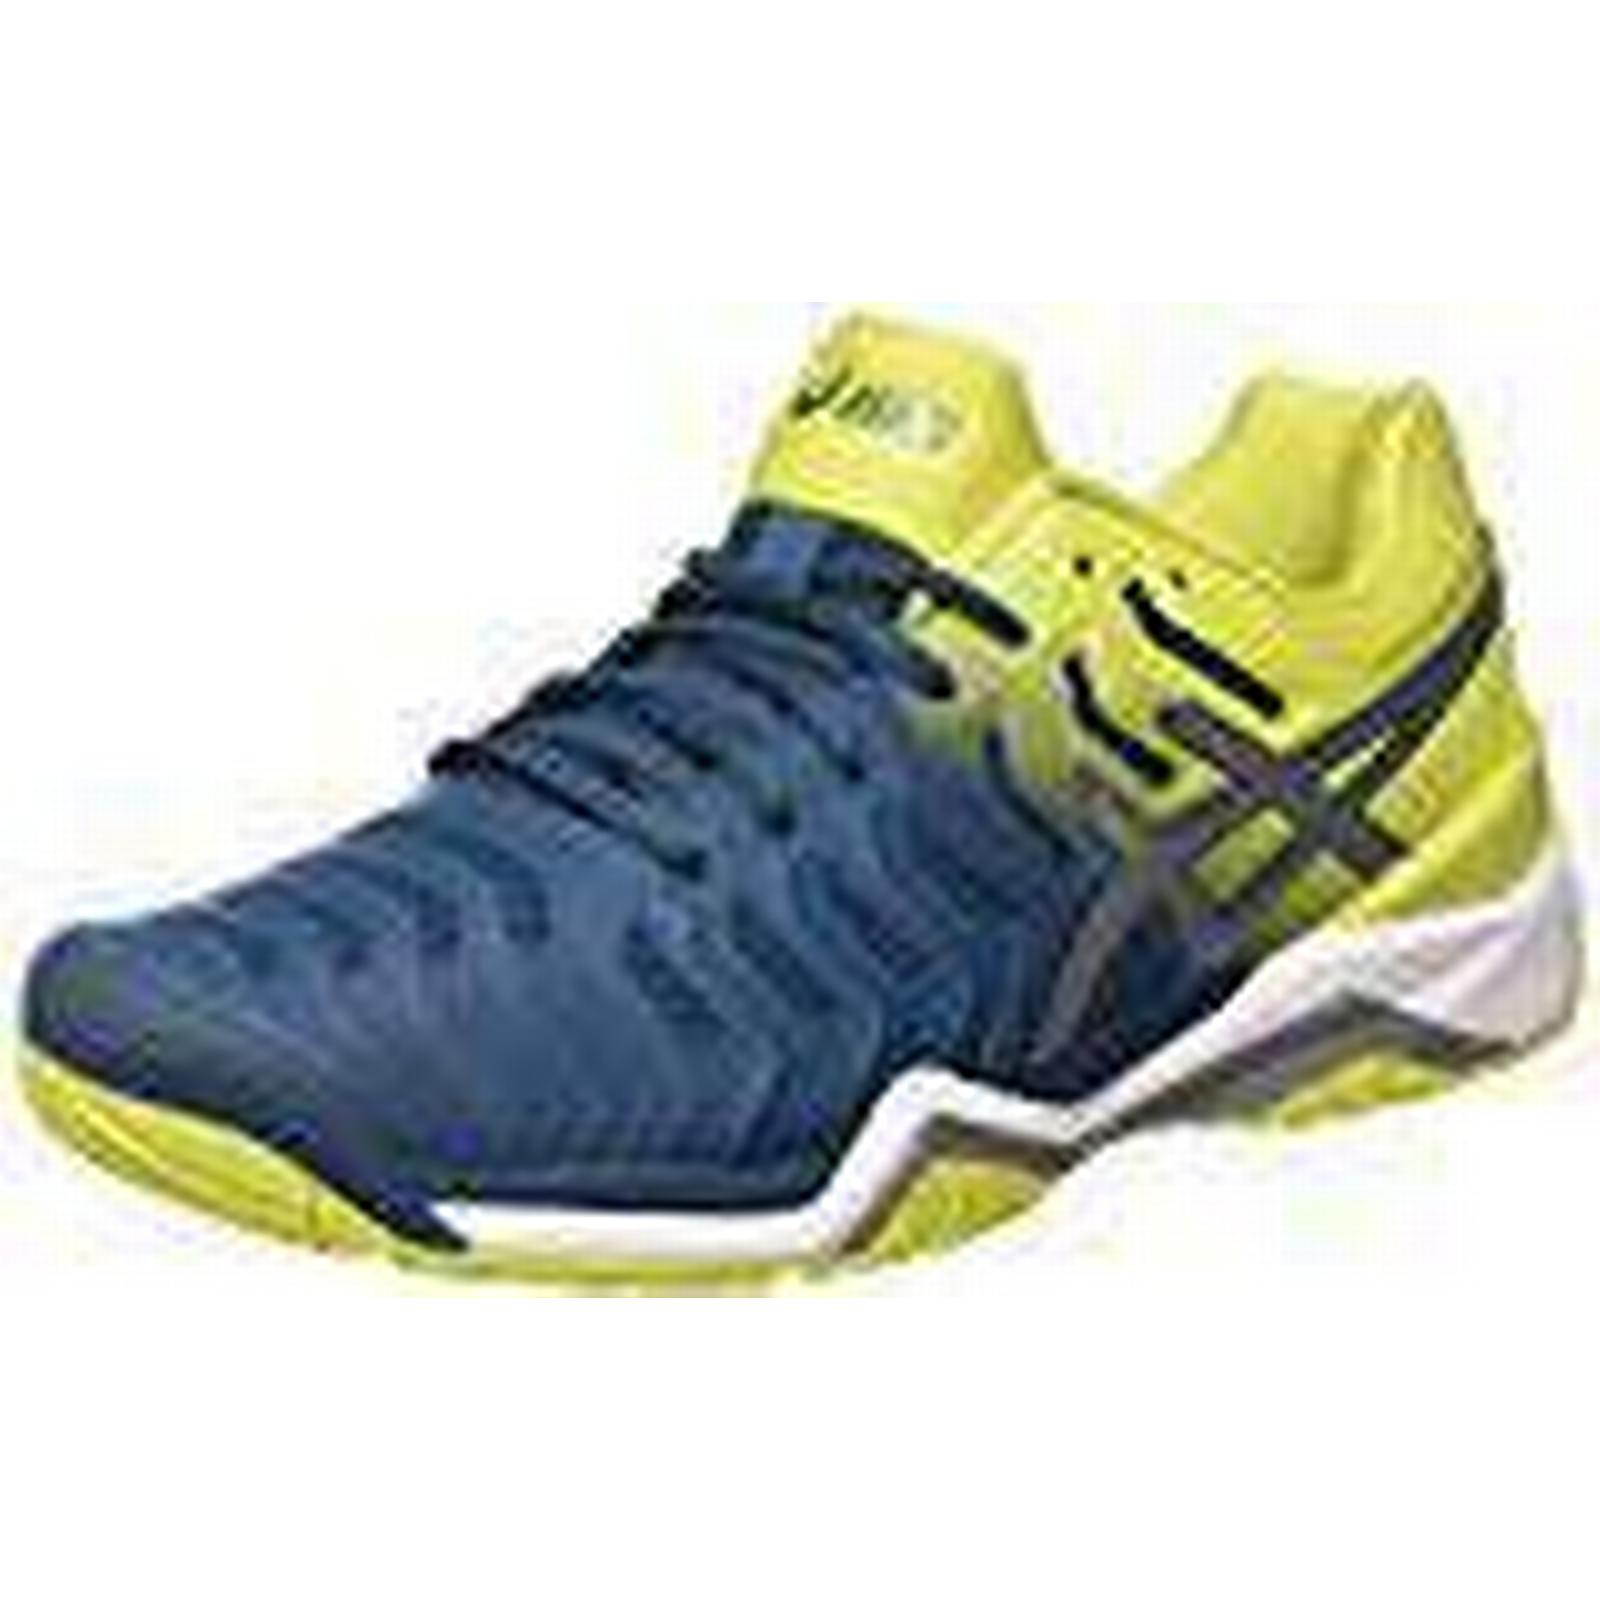 Asics Men's (Ink Gel-Resolution 7 Tennis Shoes (Ink Men's Blue/Sulphur Spring/White 4589), 12 UK 859c5d